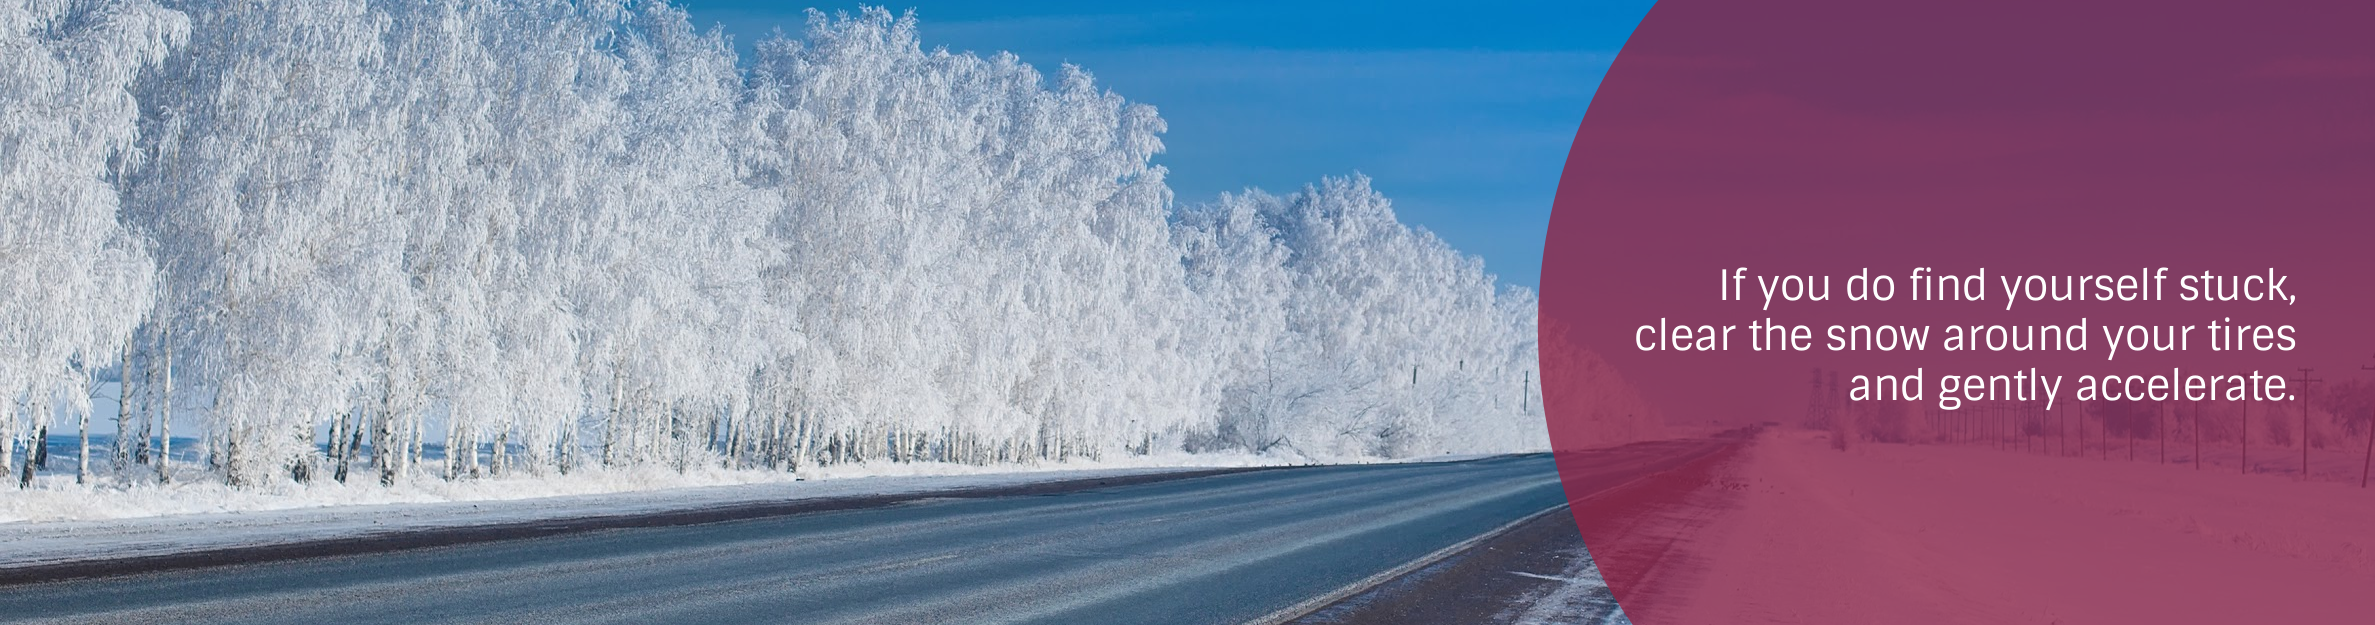 Photo: Winter Road Text: If you do find yourself stuck, clear the snow around your tires and gently accelerate.